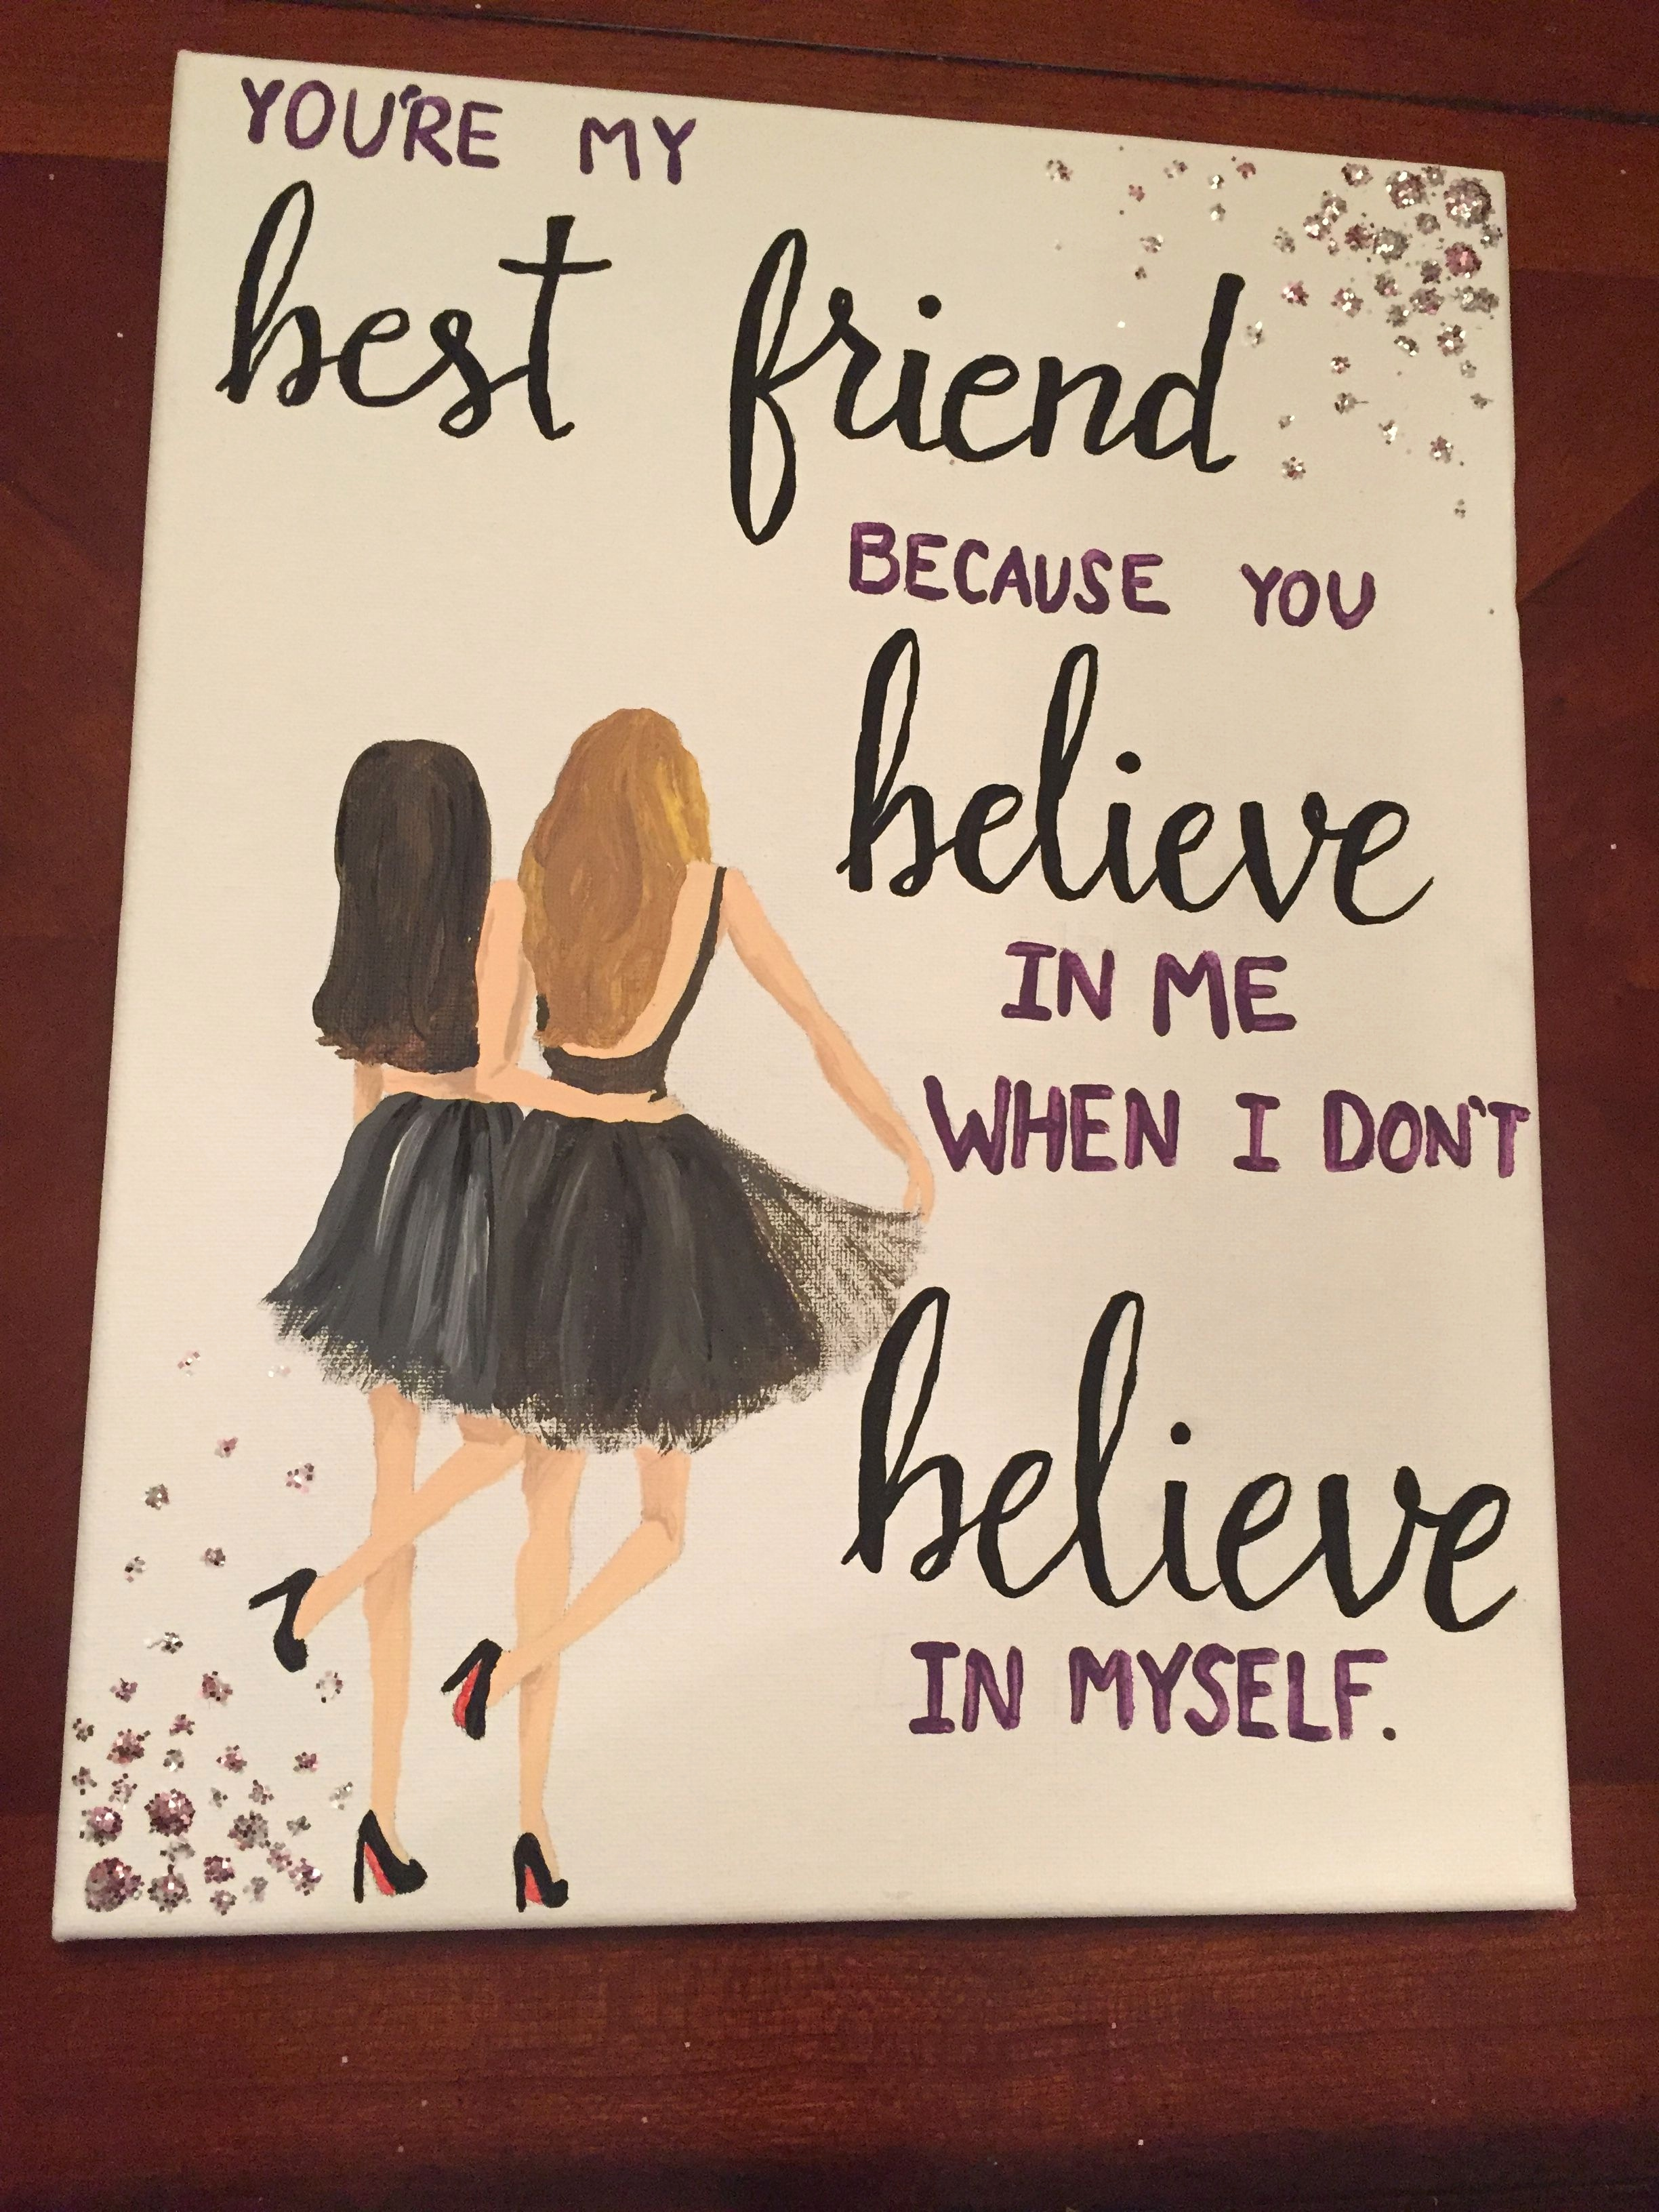 write best friends birthday card ; what-to-write-in-best-friends-birthday-card-inspirational-canvas-for-best-friend-quote-painting-diy-of-what-to-write-in-best-friends-birthday-card